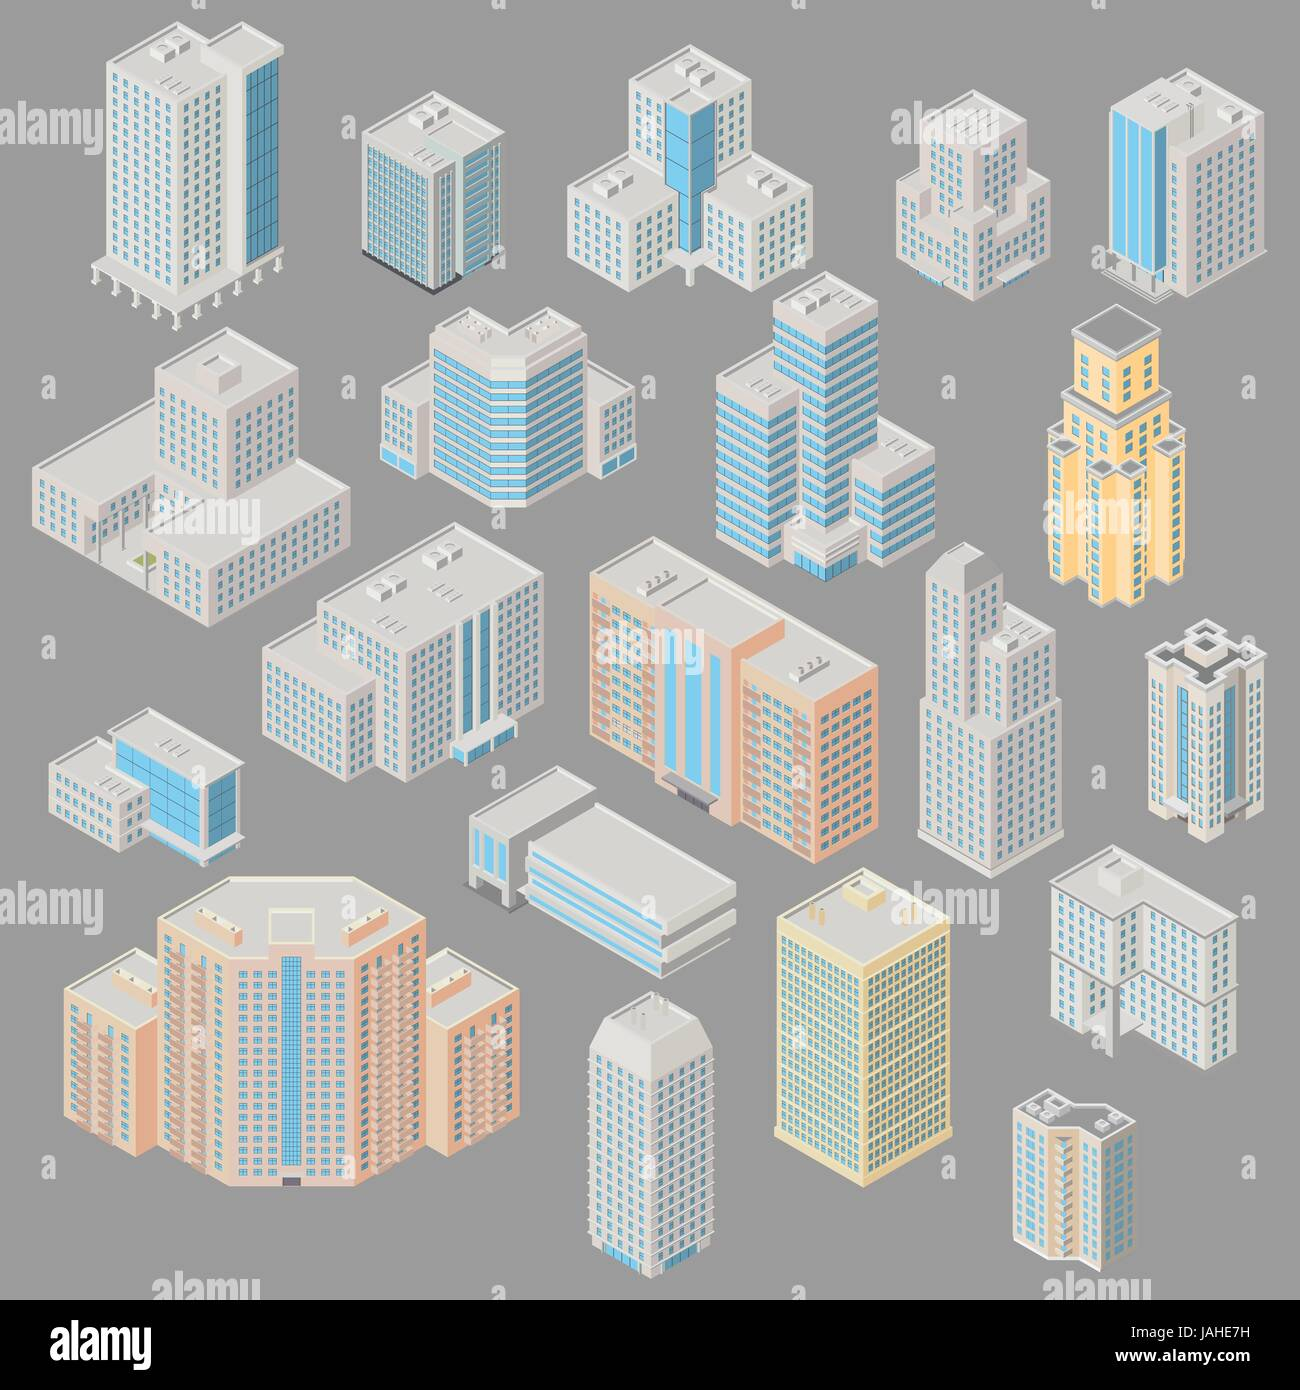 Vector isometric city infrastructure architecture map generator